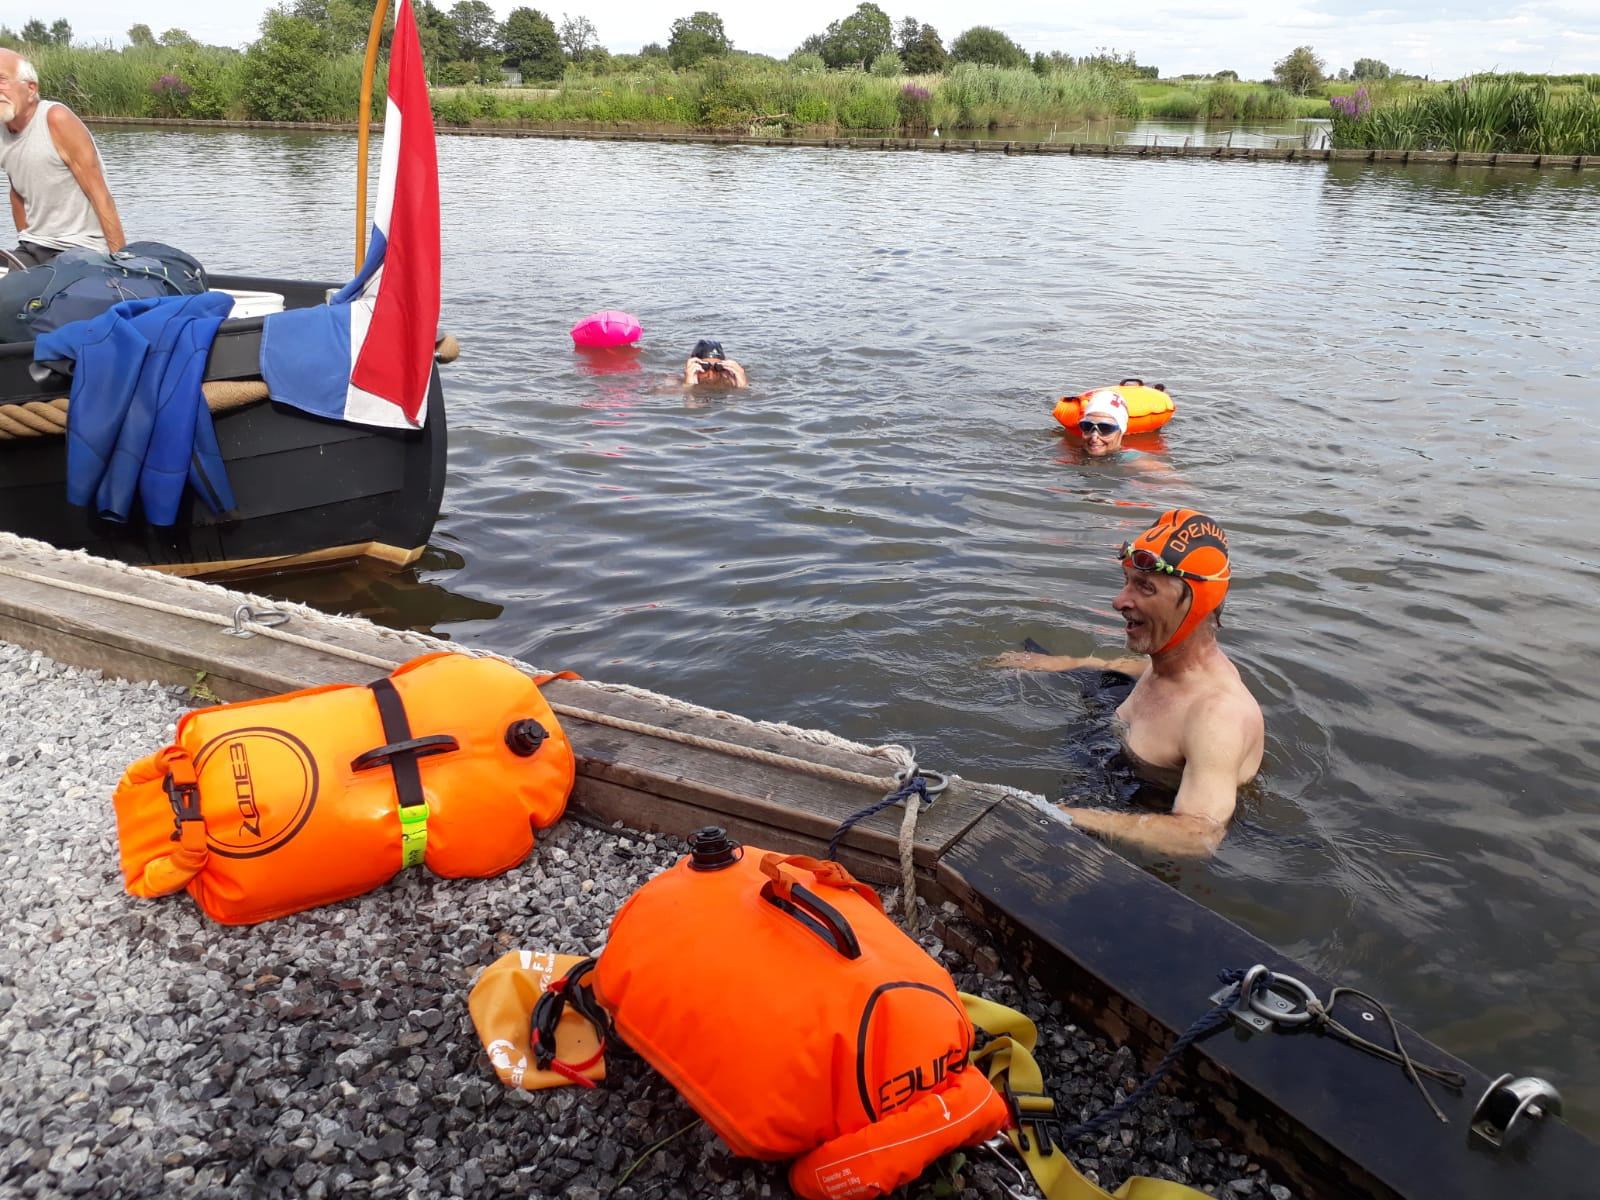 22 juli 2020 - Slow Linge triathlon # 07